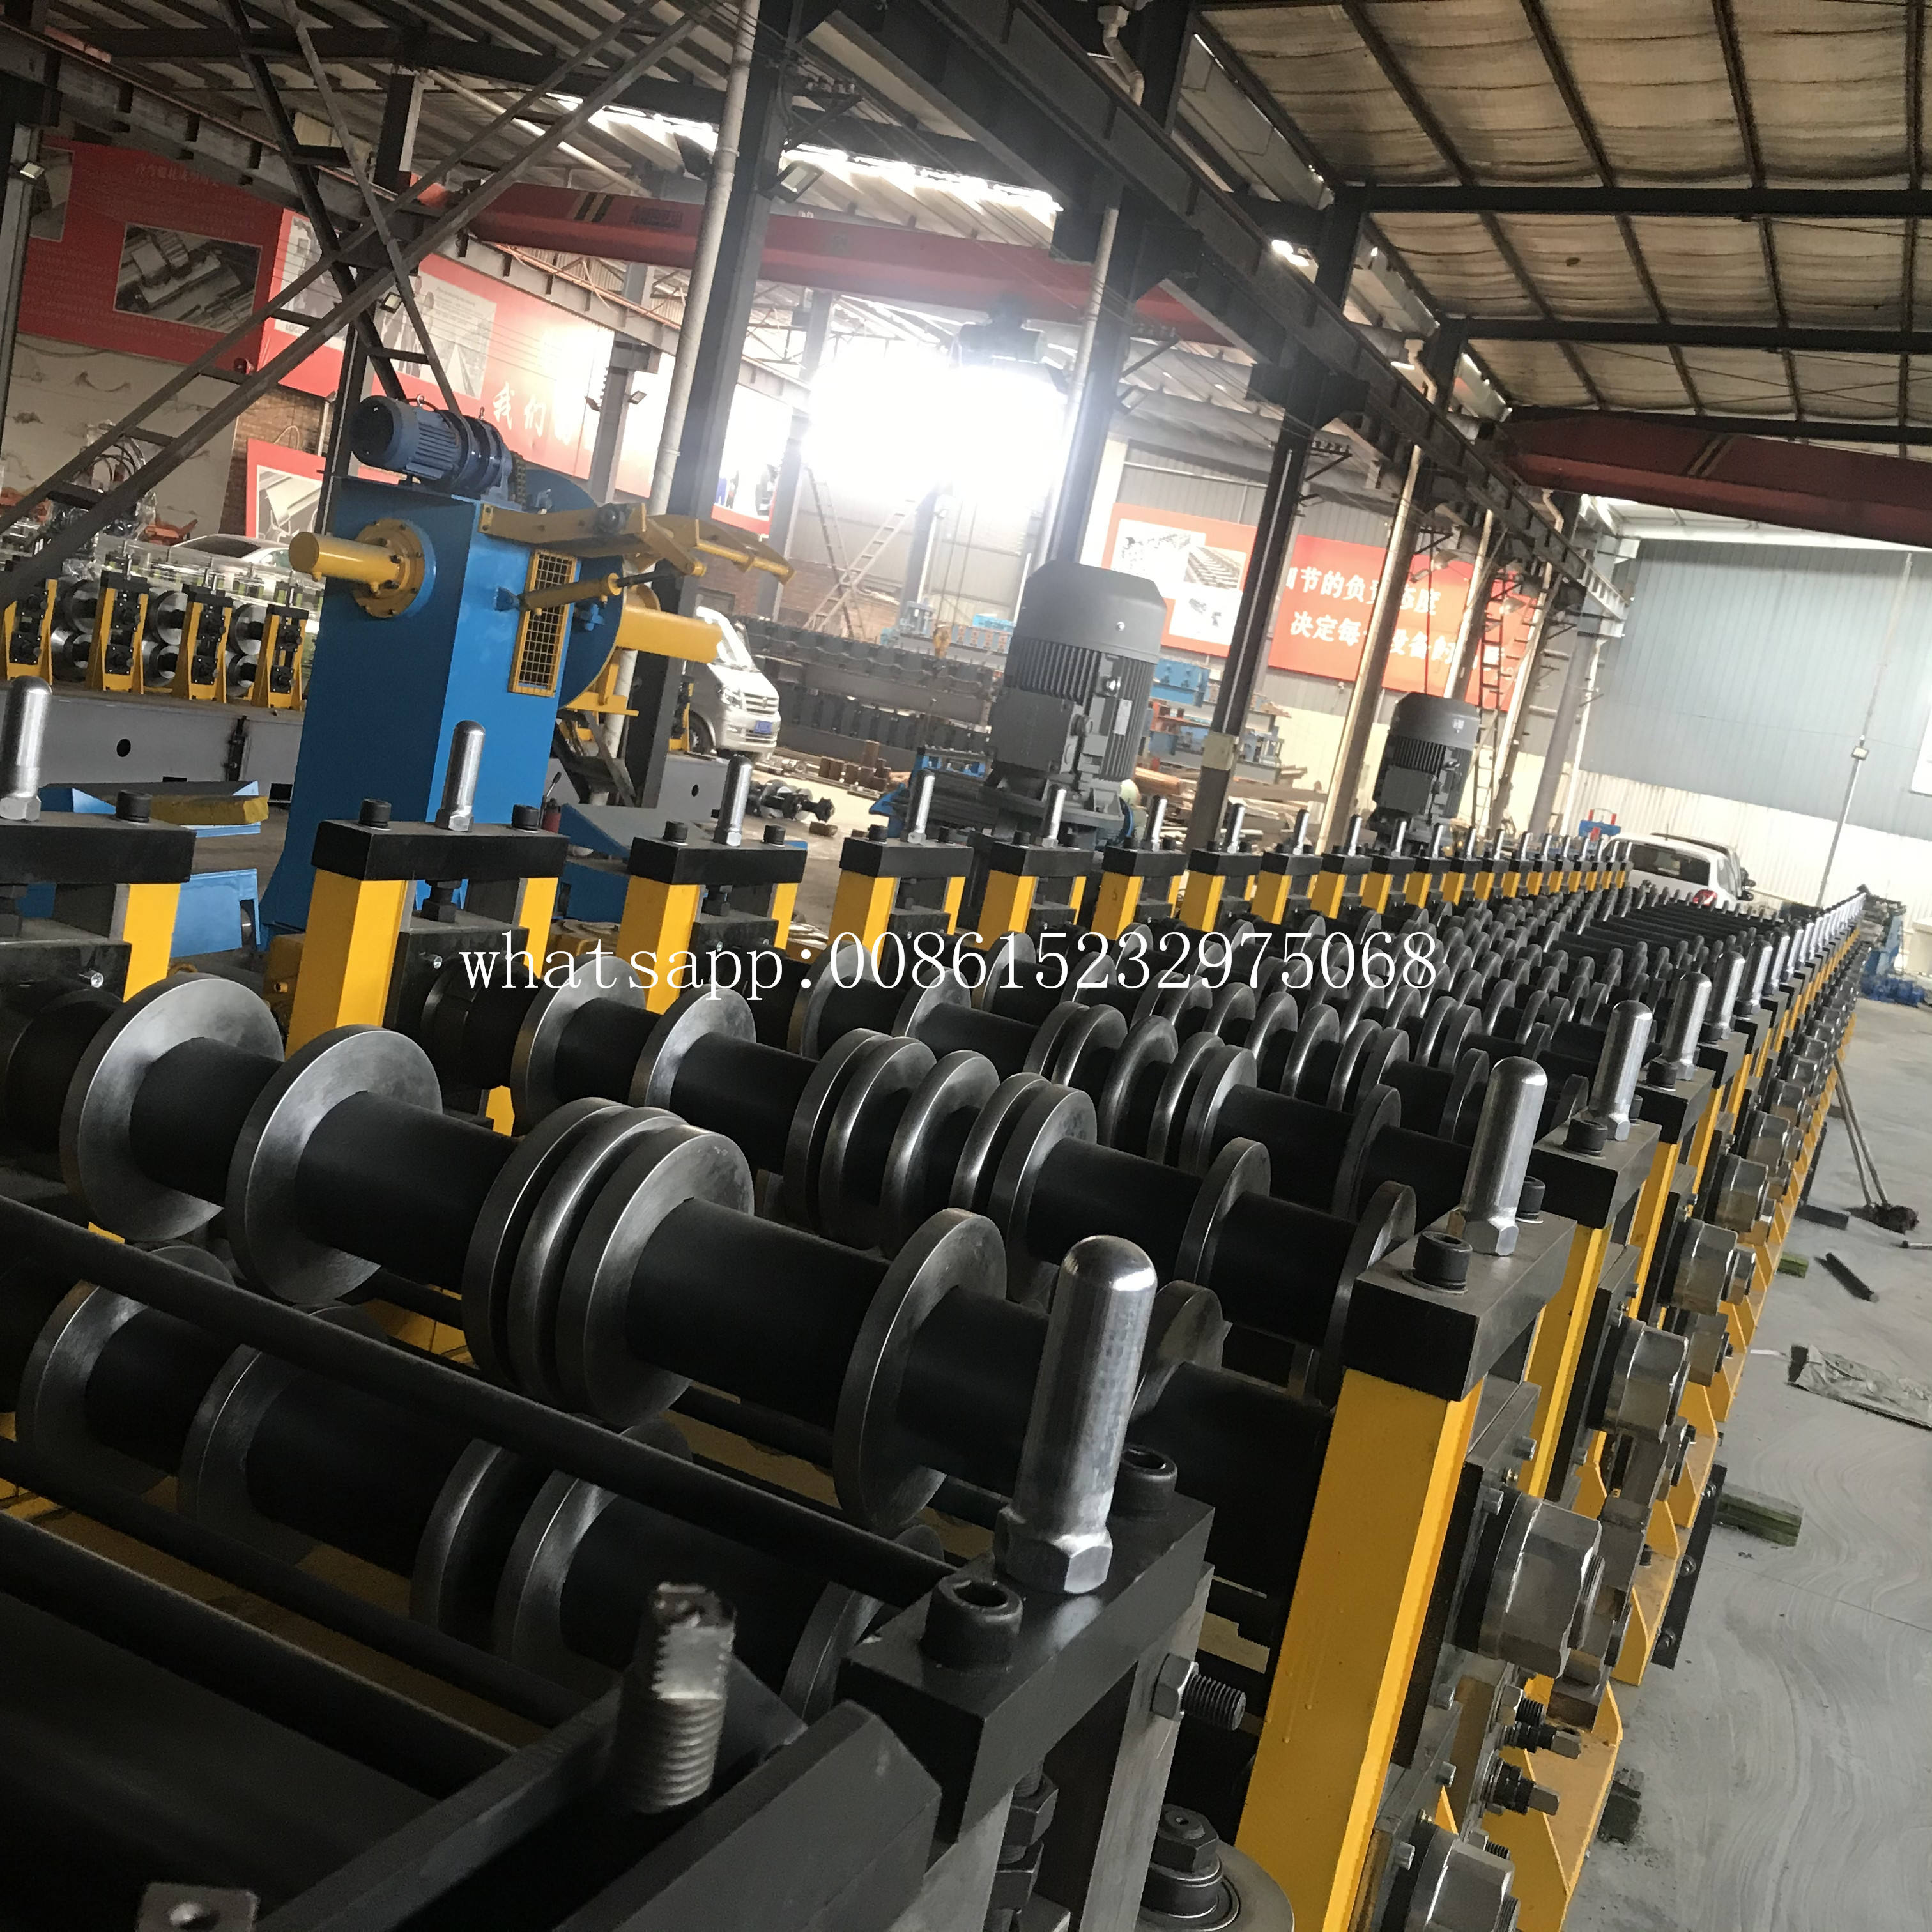 Silo Forming Machine Steel Silo Roll Forming Machine For Sale Providing Overall Silo System Solution